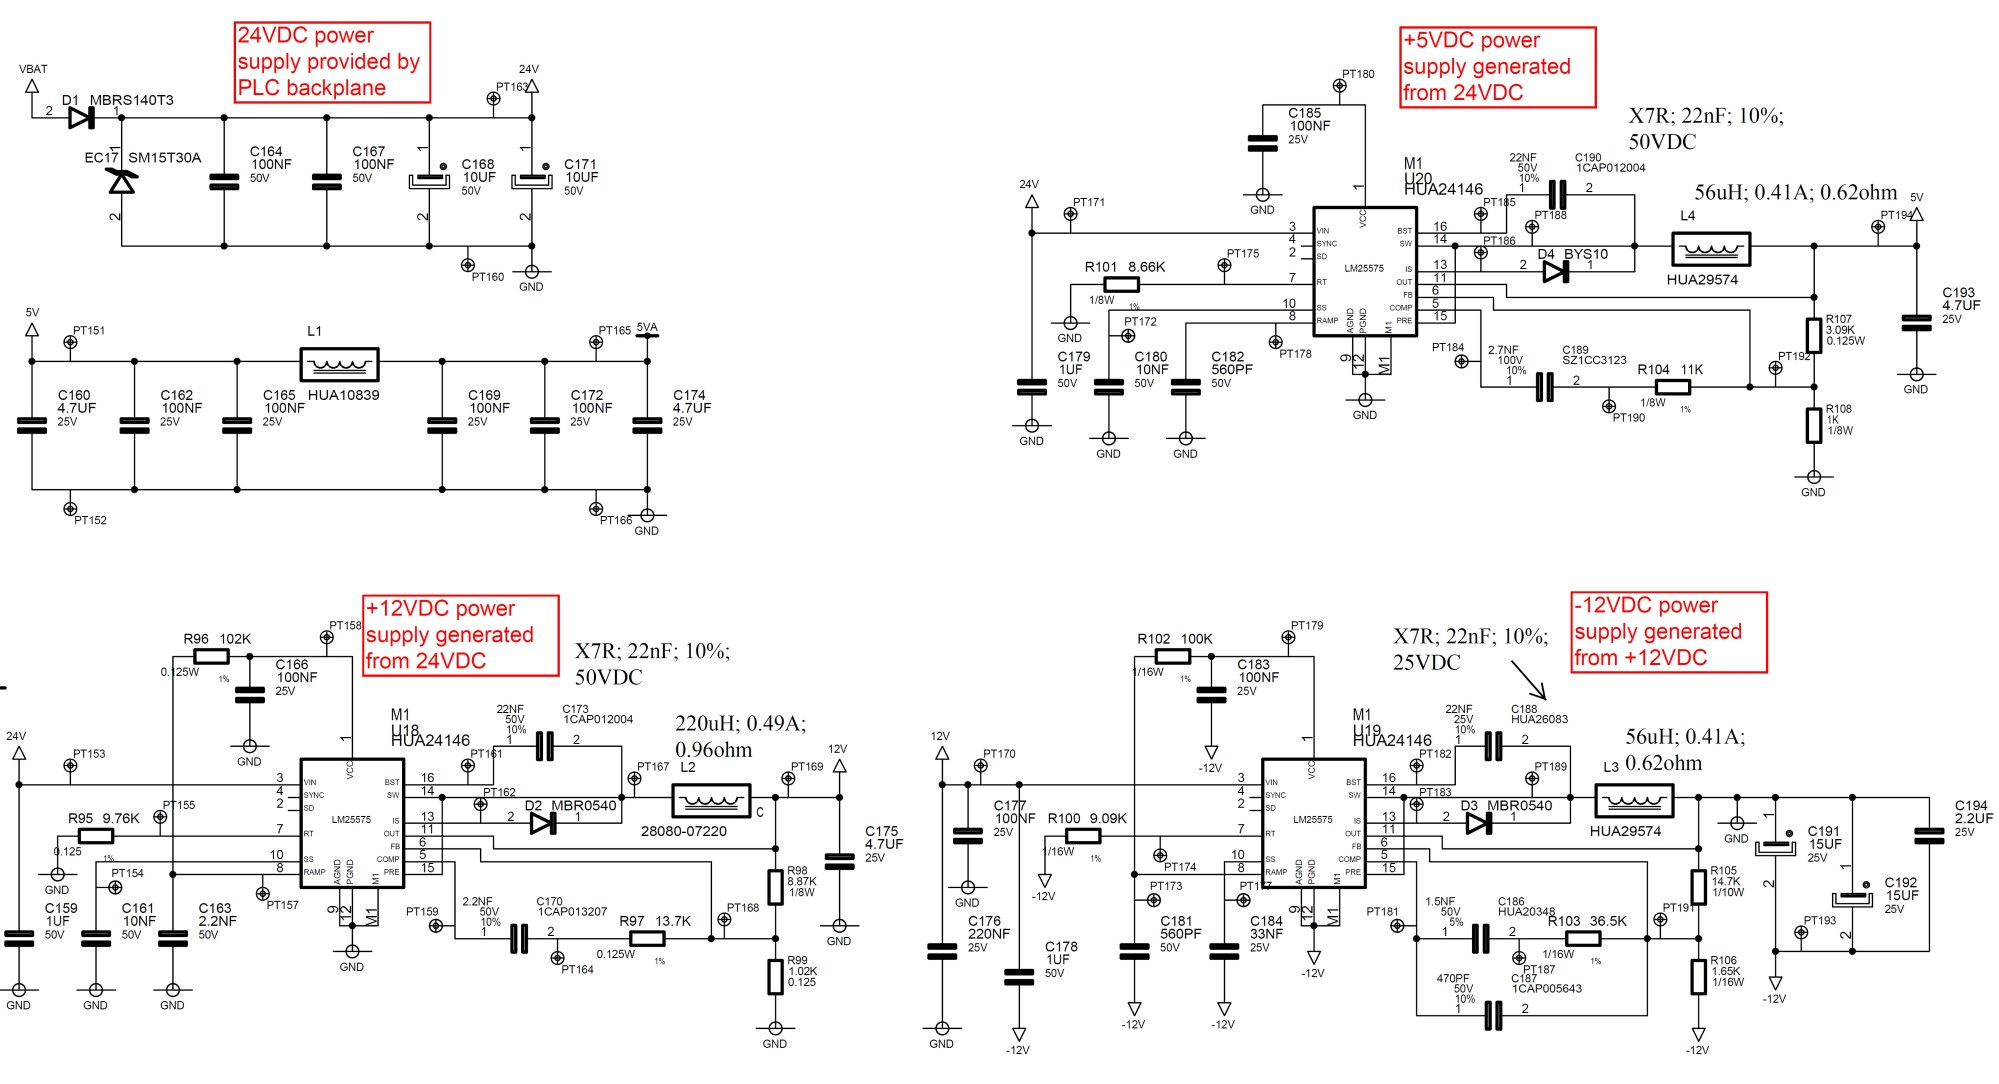 hight resolution of i have made a board using different lm25575 to manage the power supplies from a plc backplane providing 24vdc as shown herebelow